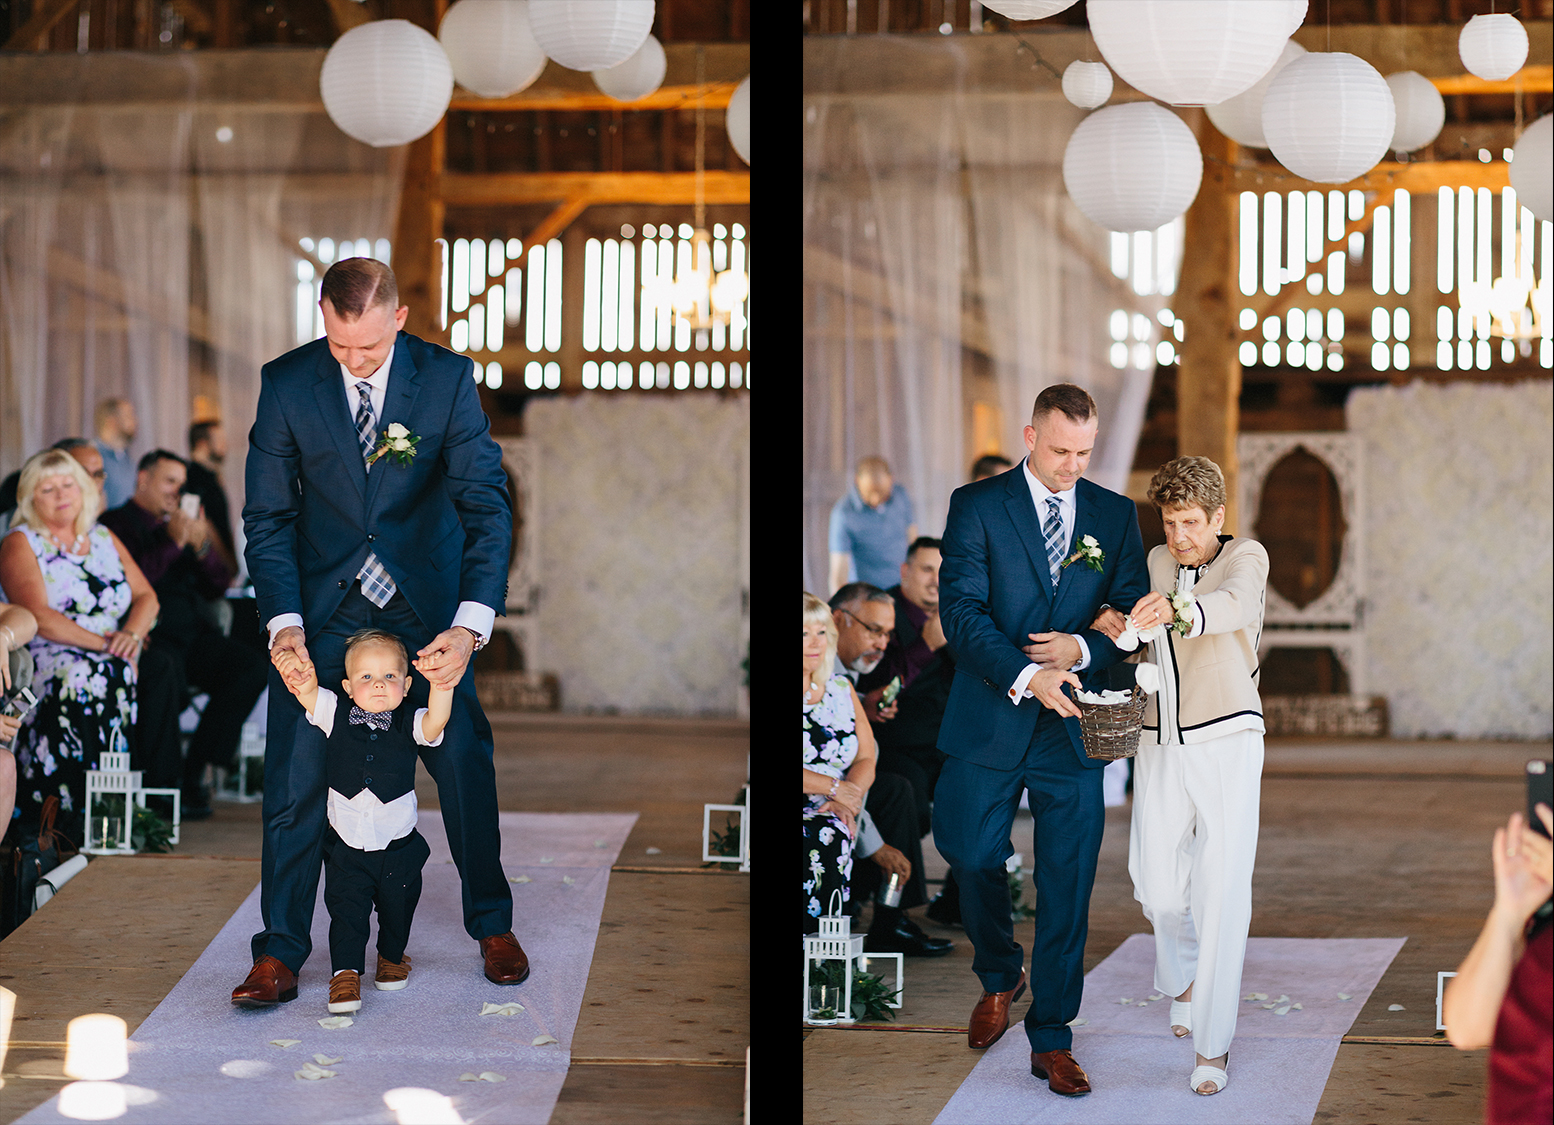 Dowswell-Barn-Wedding-Bride-and-Groom-Walking-Down-Aisle.jpg